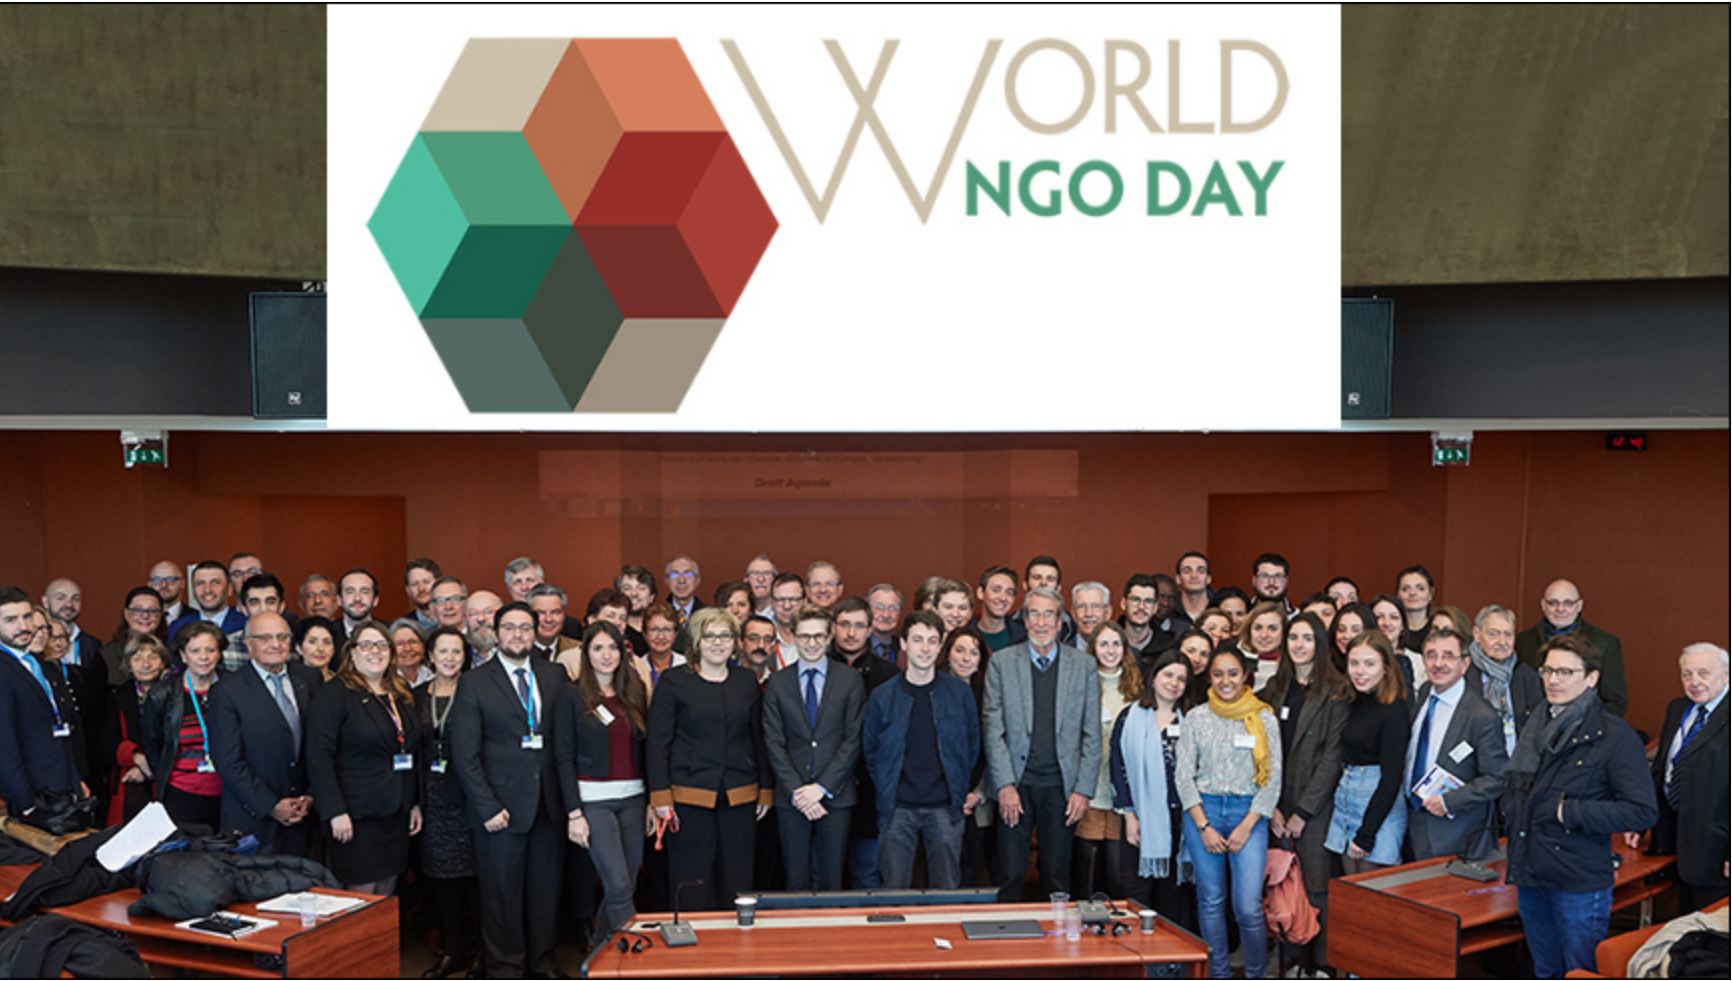 Image of World NGO day celebration by The Council of Europe